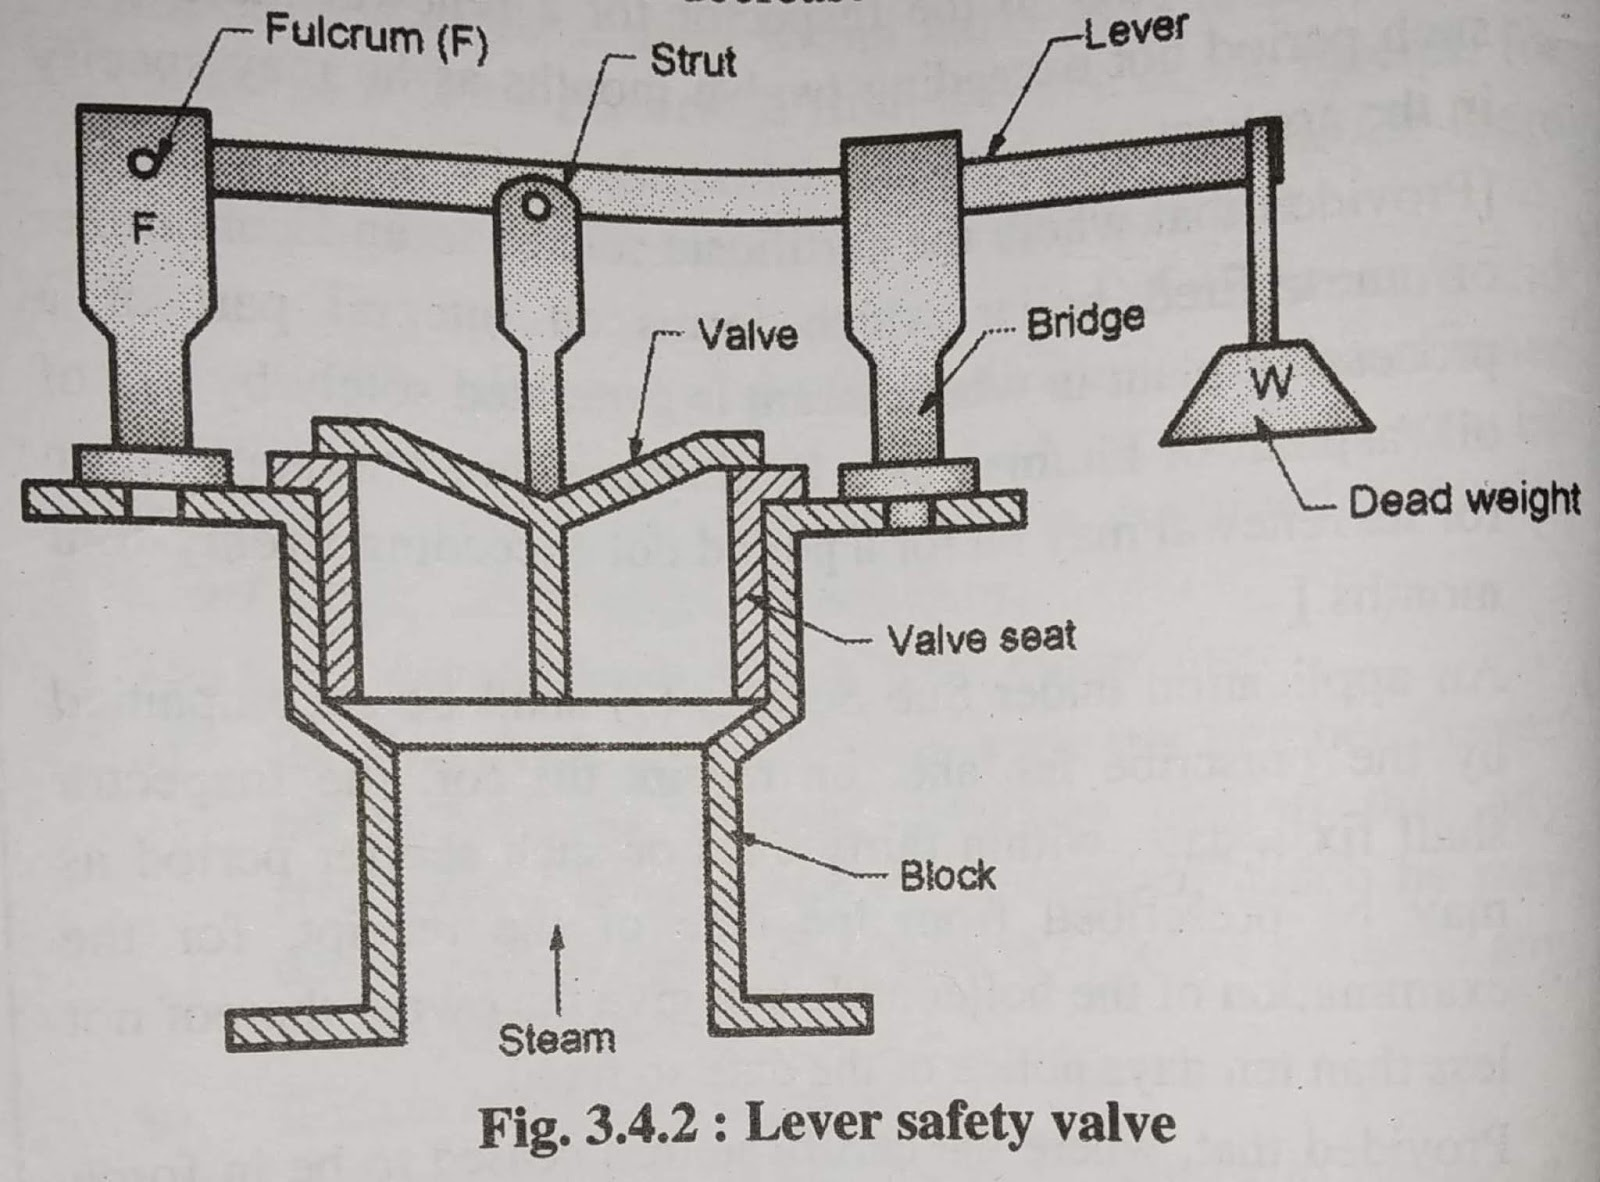 Lever safety valve definition working diagram parts steam lever safety valve assembly drawing ccuart Choice Image